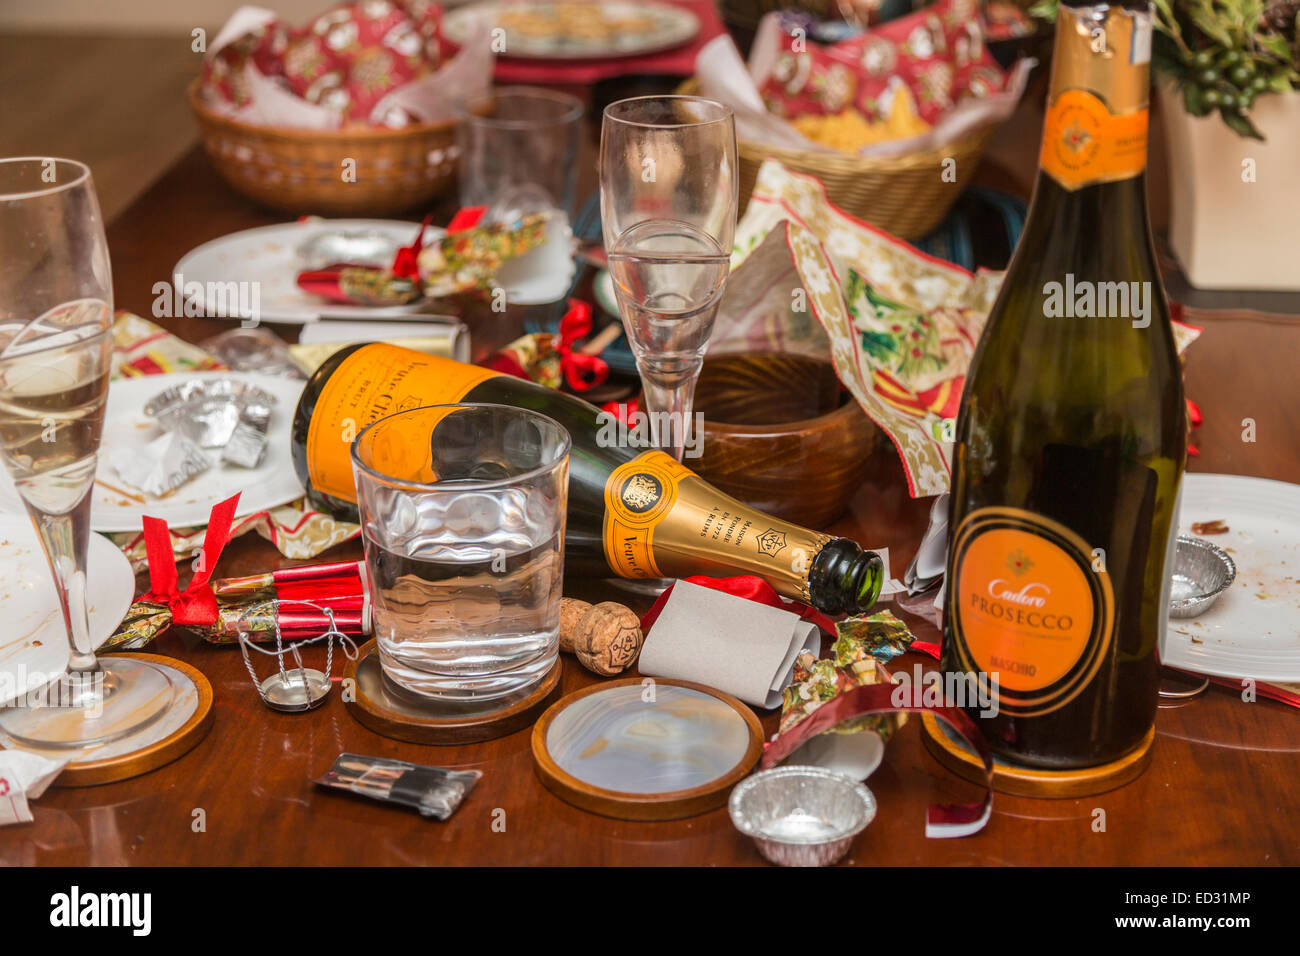 Debris, rubbish and unwashed glasses in the aftermath of a festive season party with an empty Veuve Clicquot champagne - Stock Image